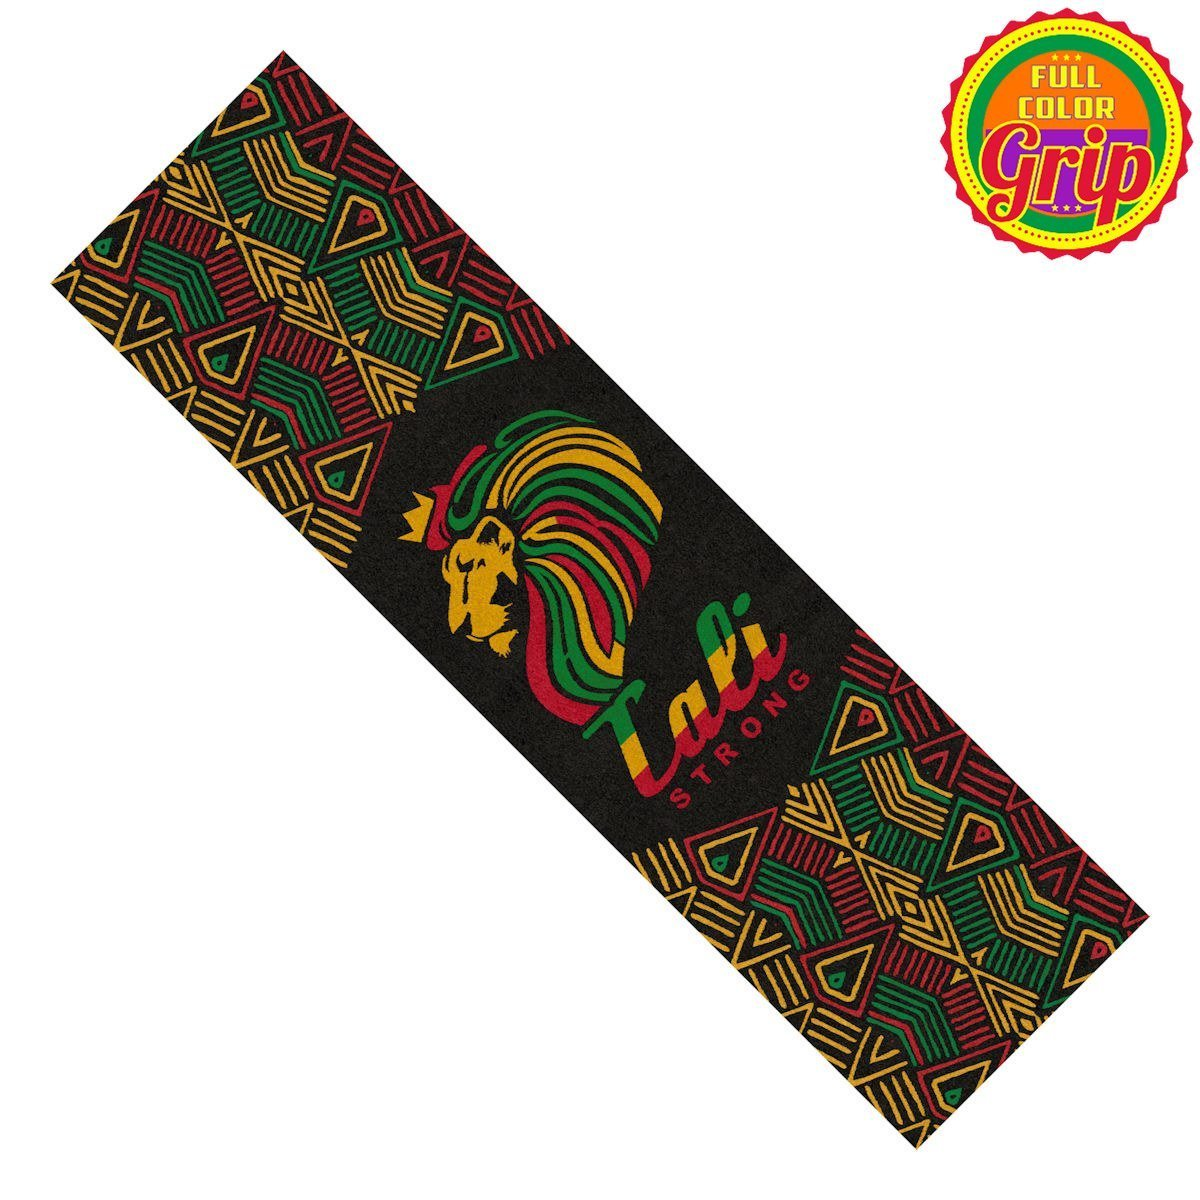 Lord Rasta Grip Tape Skateboard